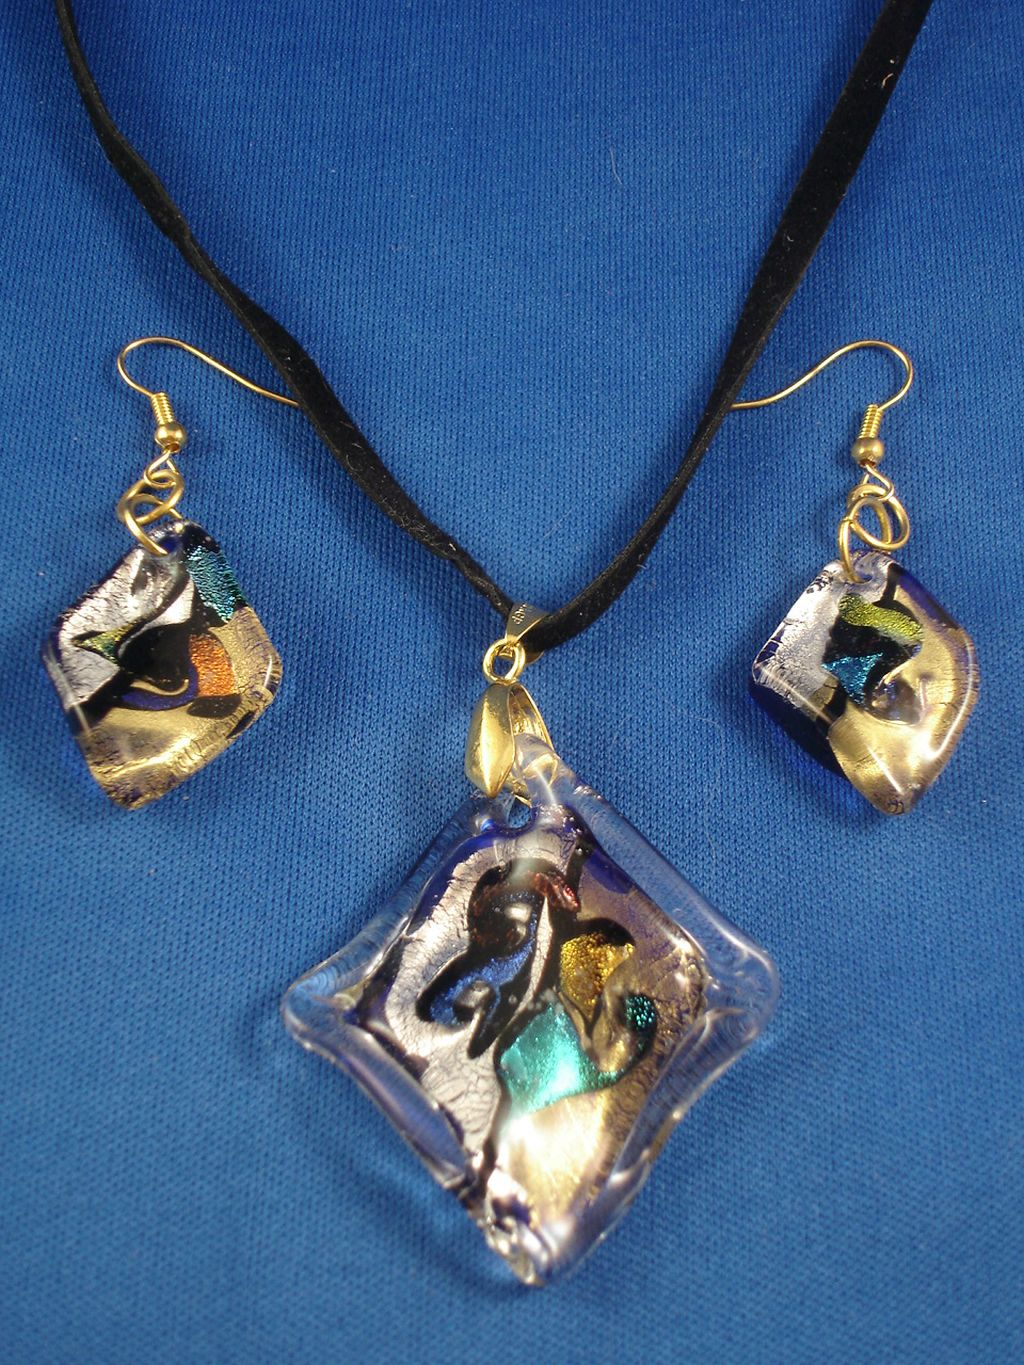 Rhomb Shape Stained Glass Pendant, Set of Necklace & Earrings,  Mixed Bright Colors